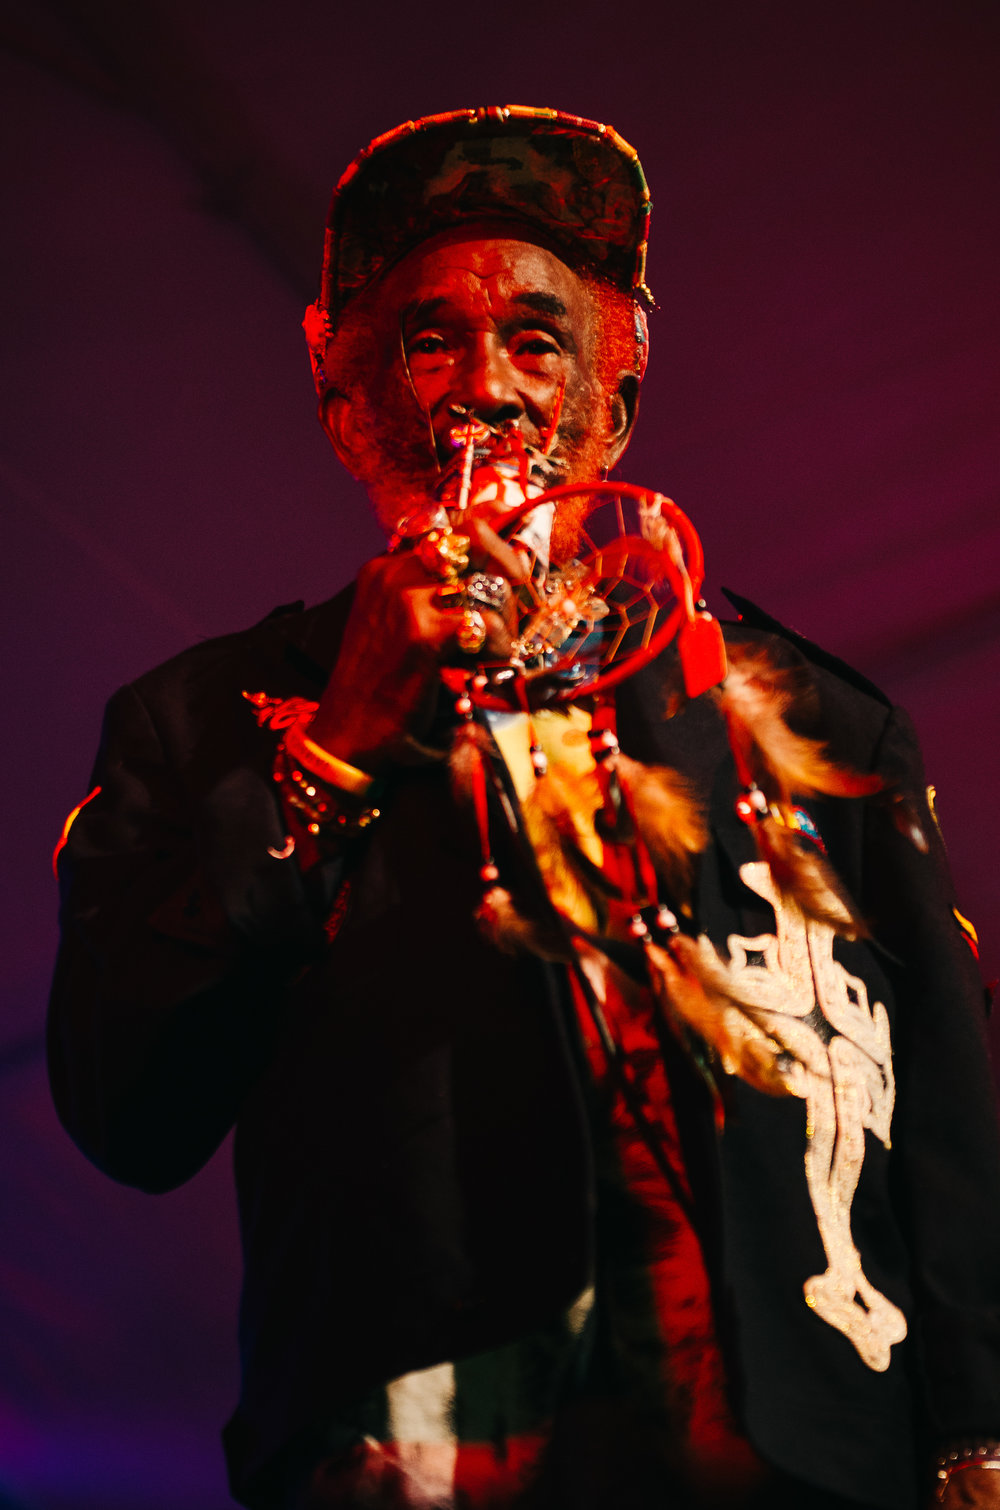 3_Lee_Scratch_Perry_Rifflandia-Timothy_Nguyen-20160916 (9 of 10).jpg